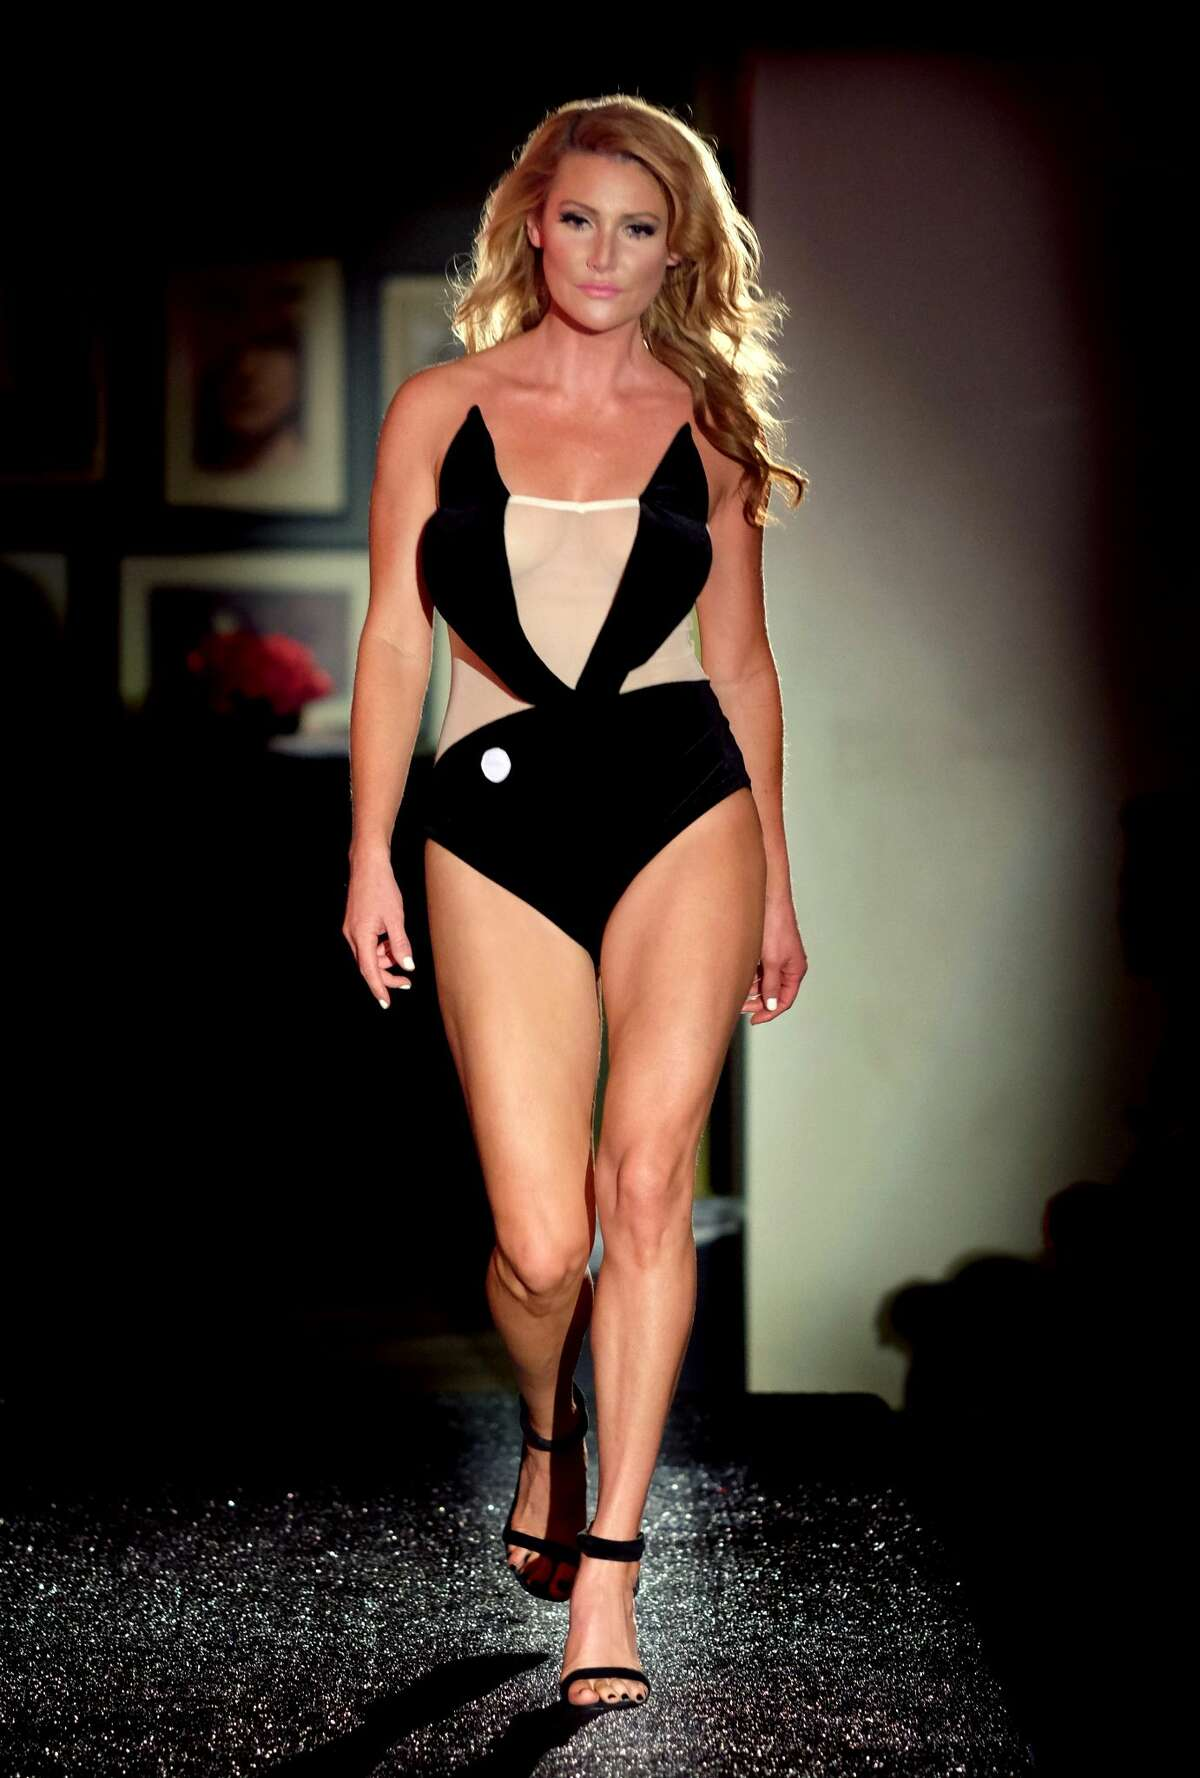 Gia Marie walks the runway for Yandy's Annual Halloween Fashion Show at Playboy World Headquarters on October 12, 2017 in Beverly Hills, California.